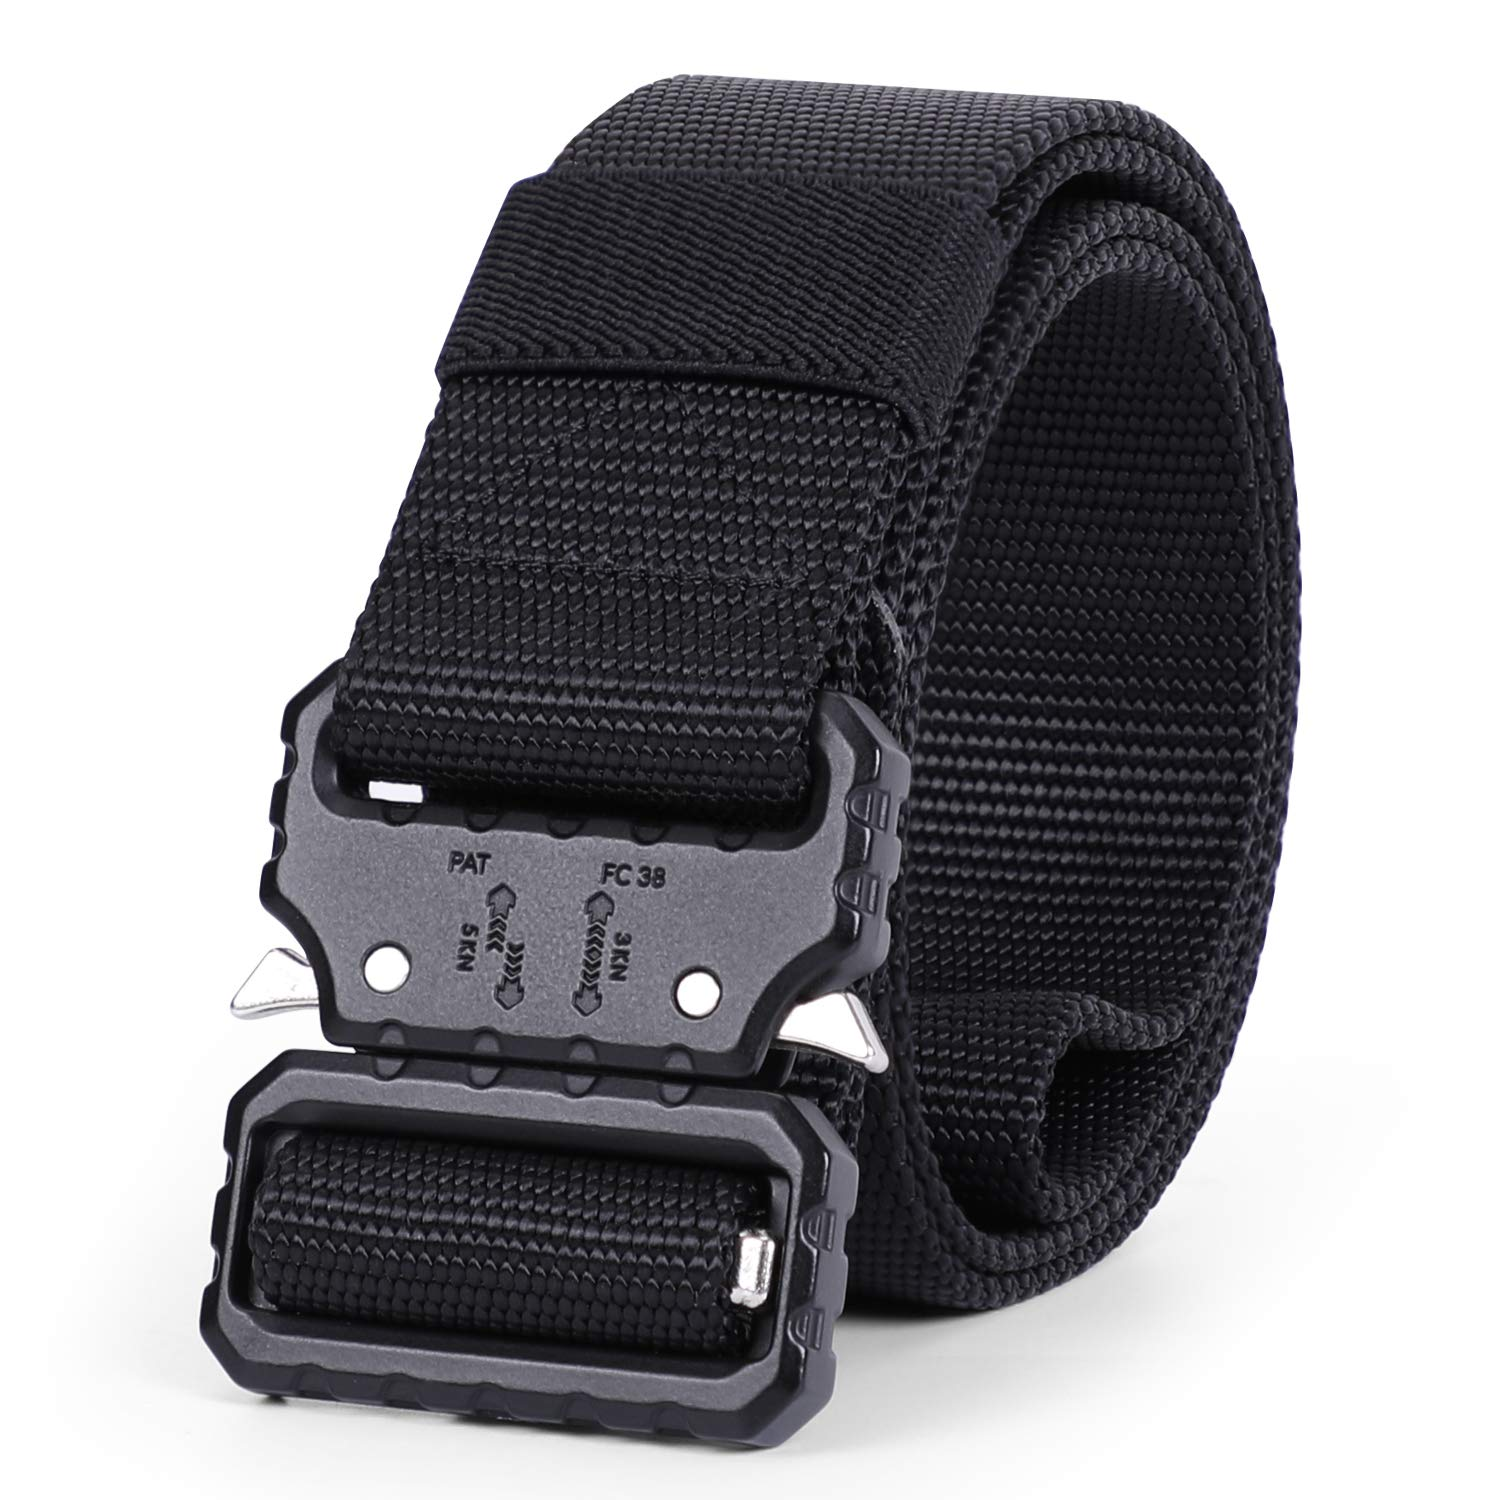 Whippy 2019 Tactical Military Webbing Nylon Belt,Webbing Gun Belt in Quick-Release Metal Buckle Price: $10.99